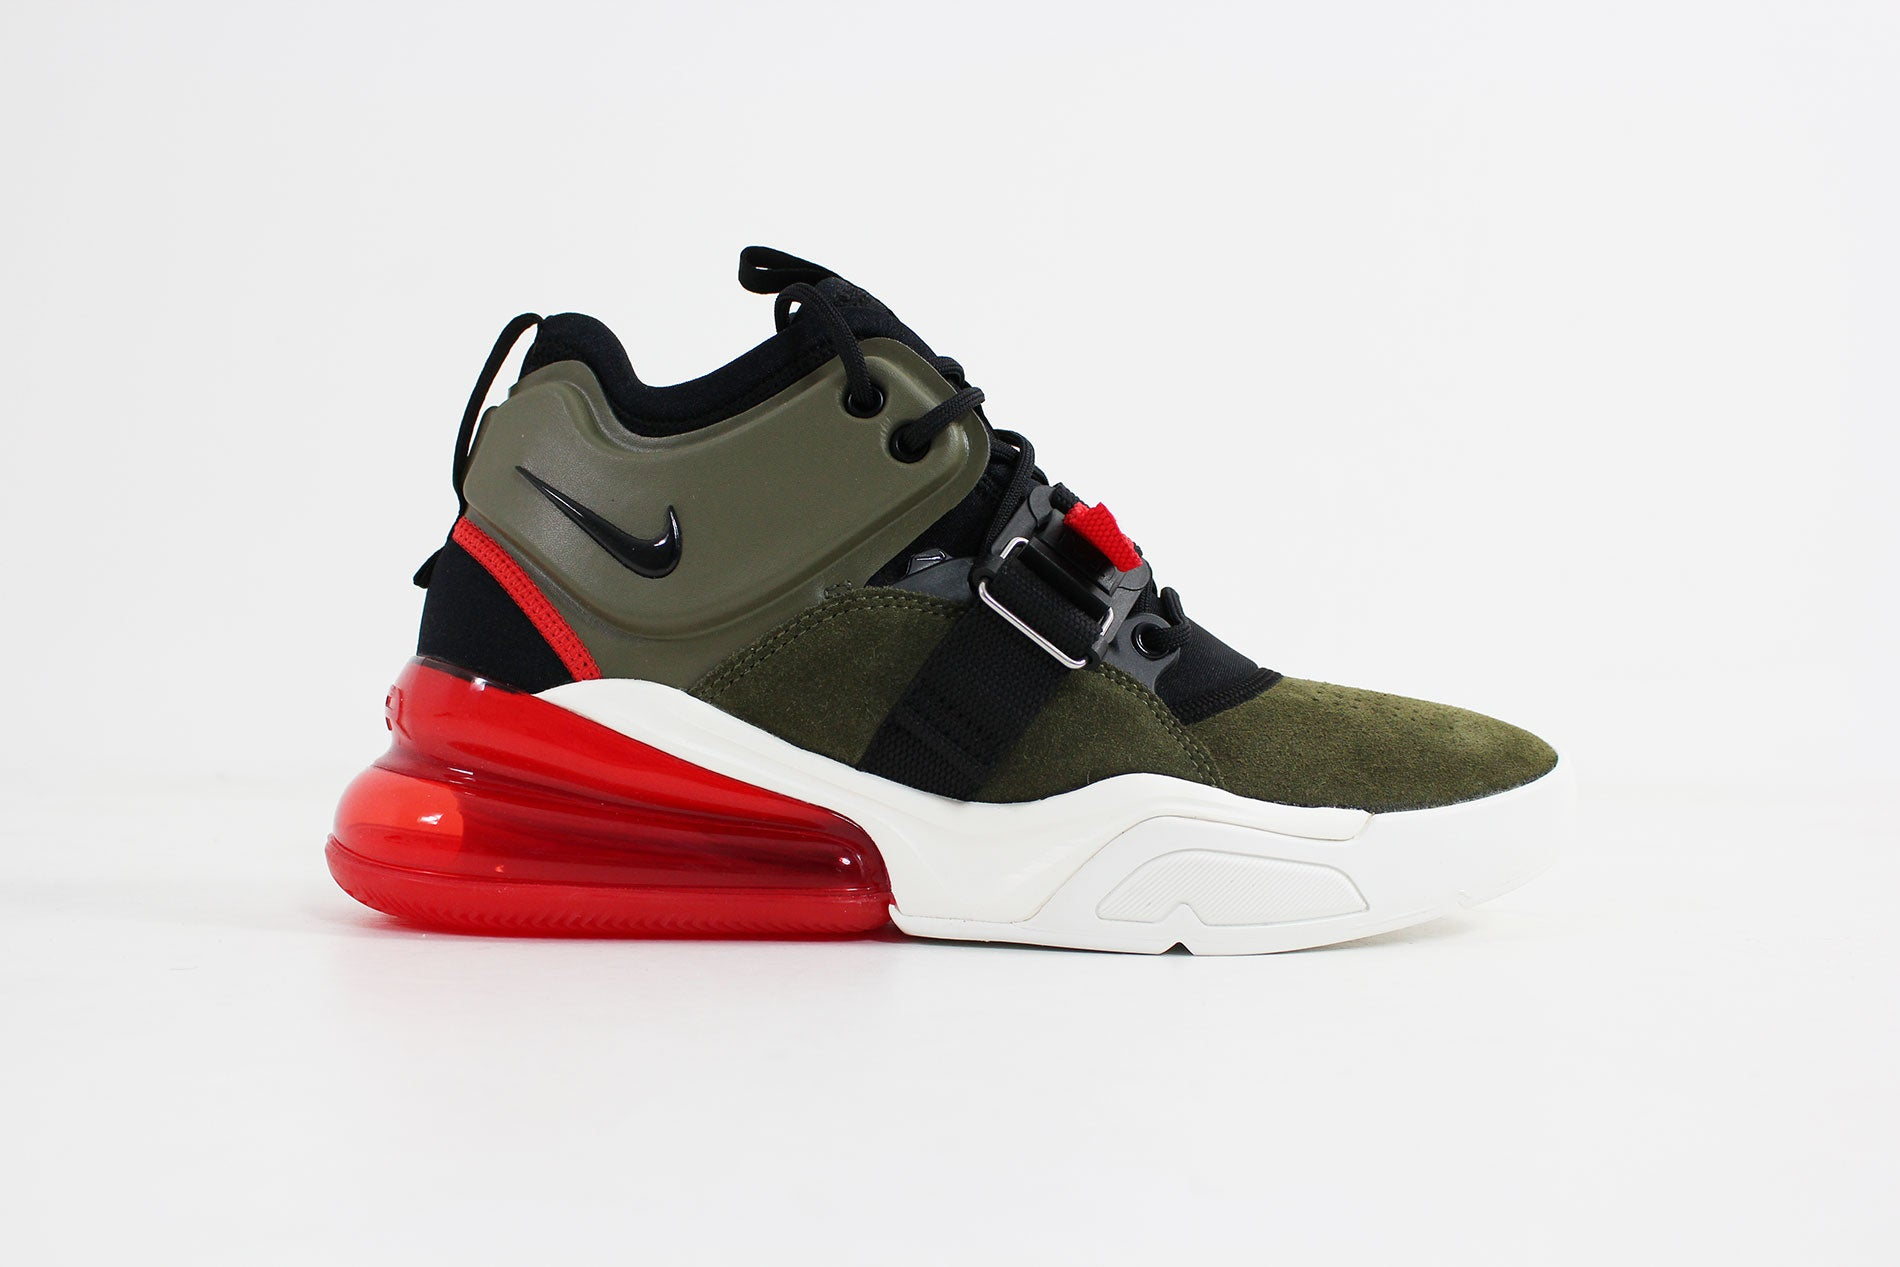 Nike - Air Force 270 (Medium Olive/ Black Challenge) AH6772-200